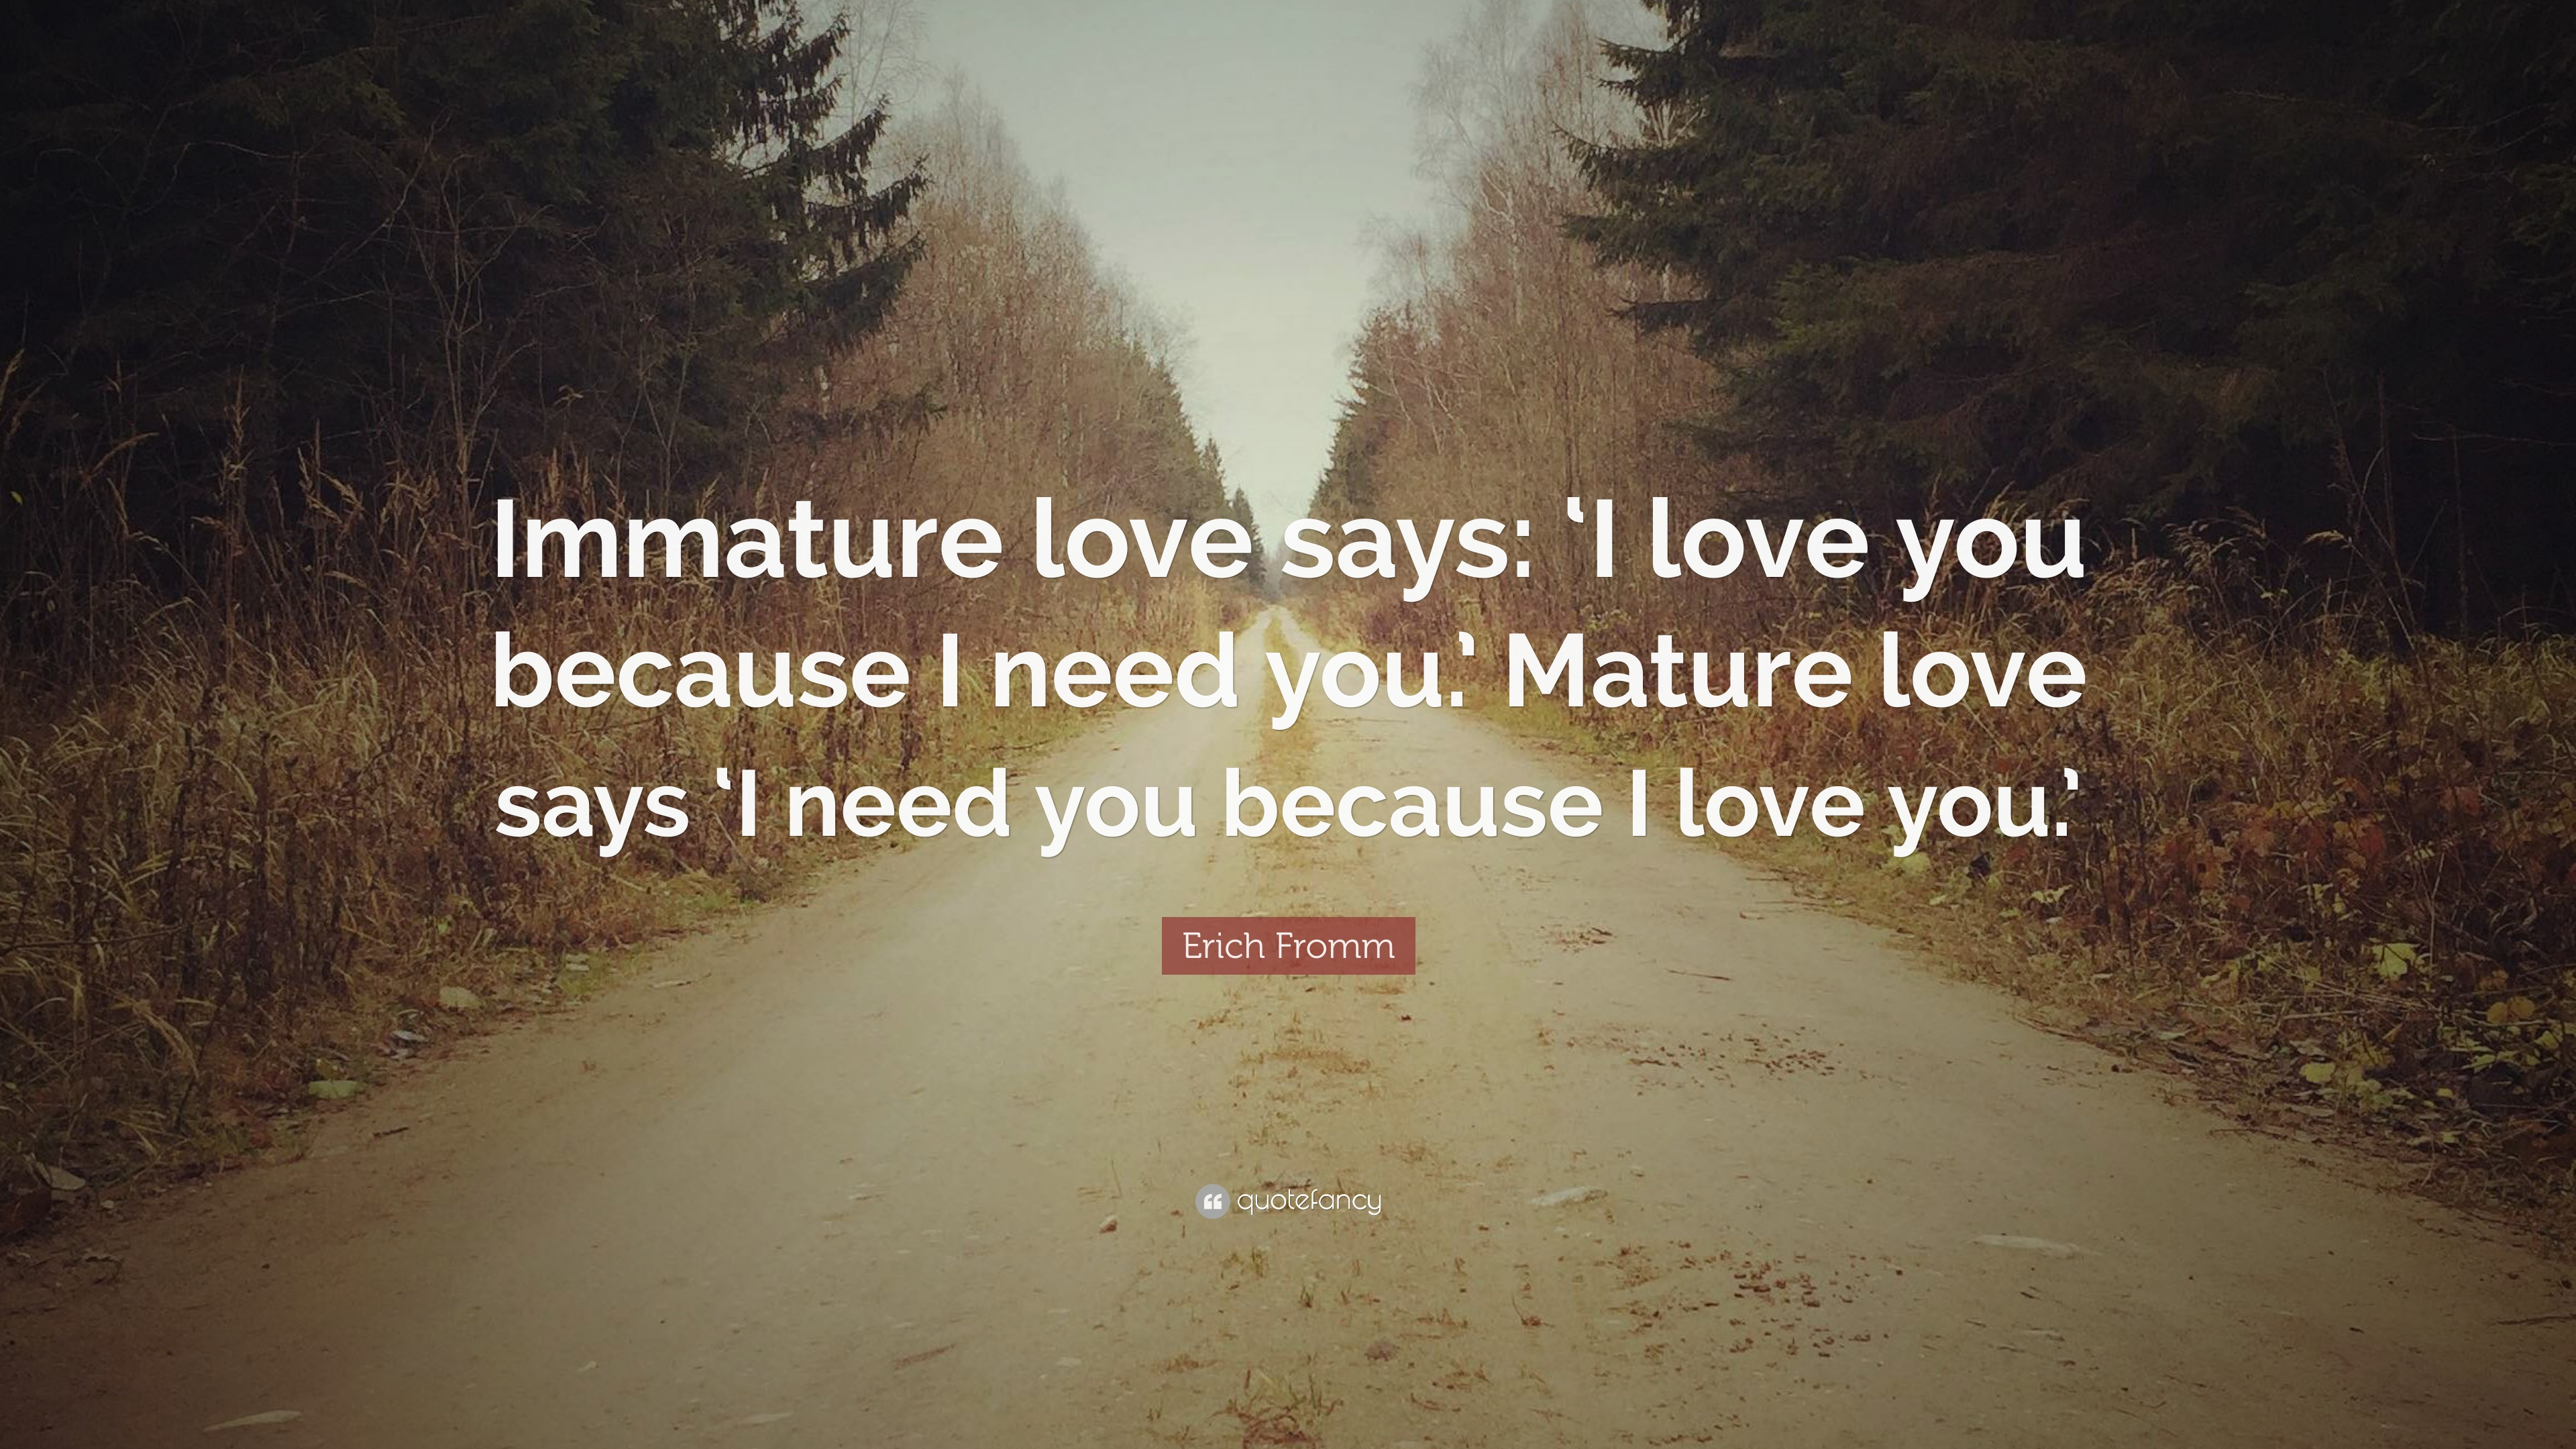 ... love you because I need you. Mature love says ?I need you because